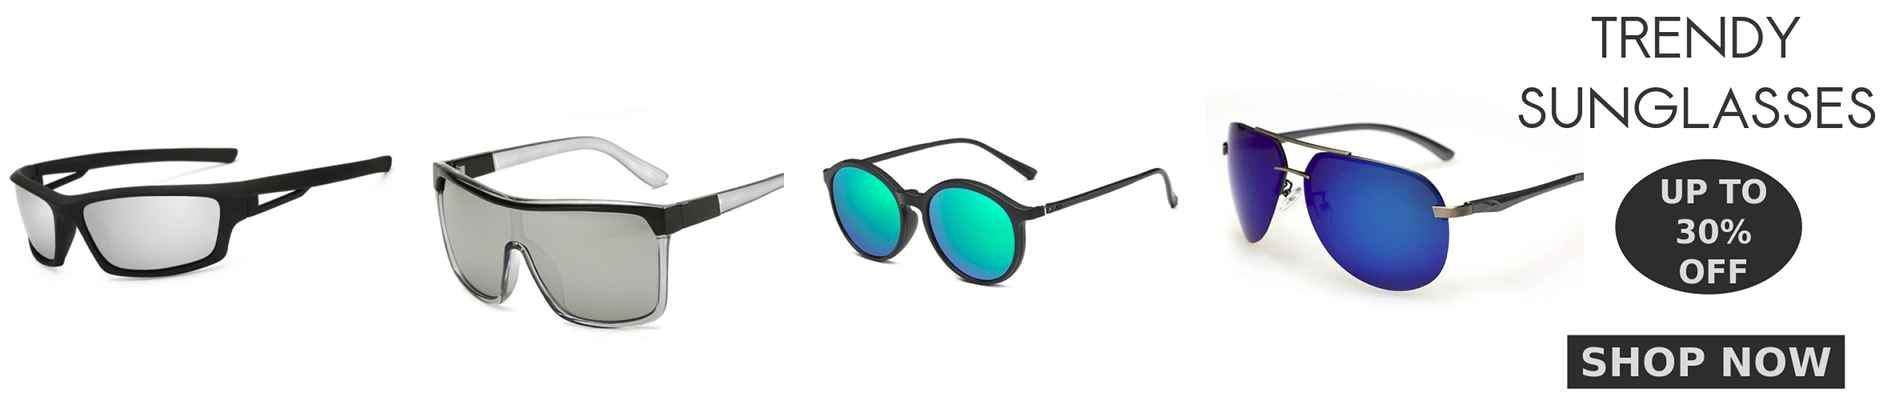 Online Shop For New And Stylish Collection Of Sunglasses, Eyeglasses And Frames For Men At Best Deals And Discounts On Shopperwear Fashion